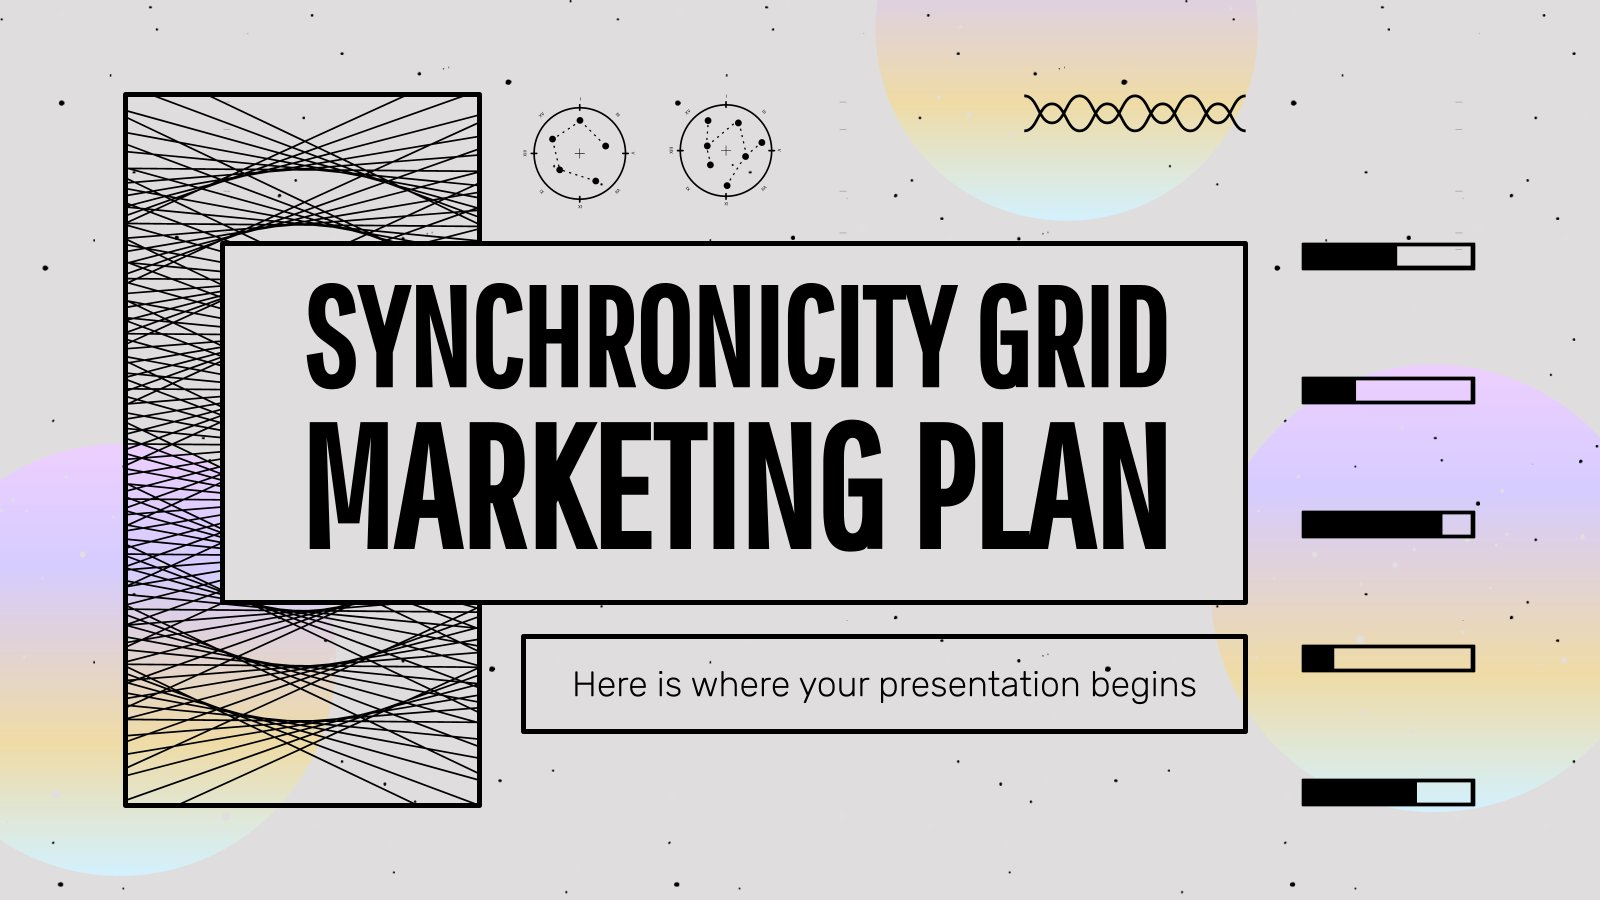 Synchronicity Grid Marketing Plan presentation template